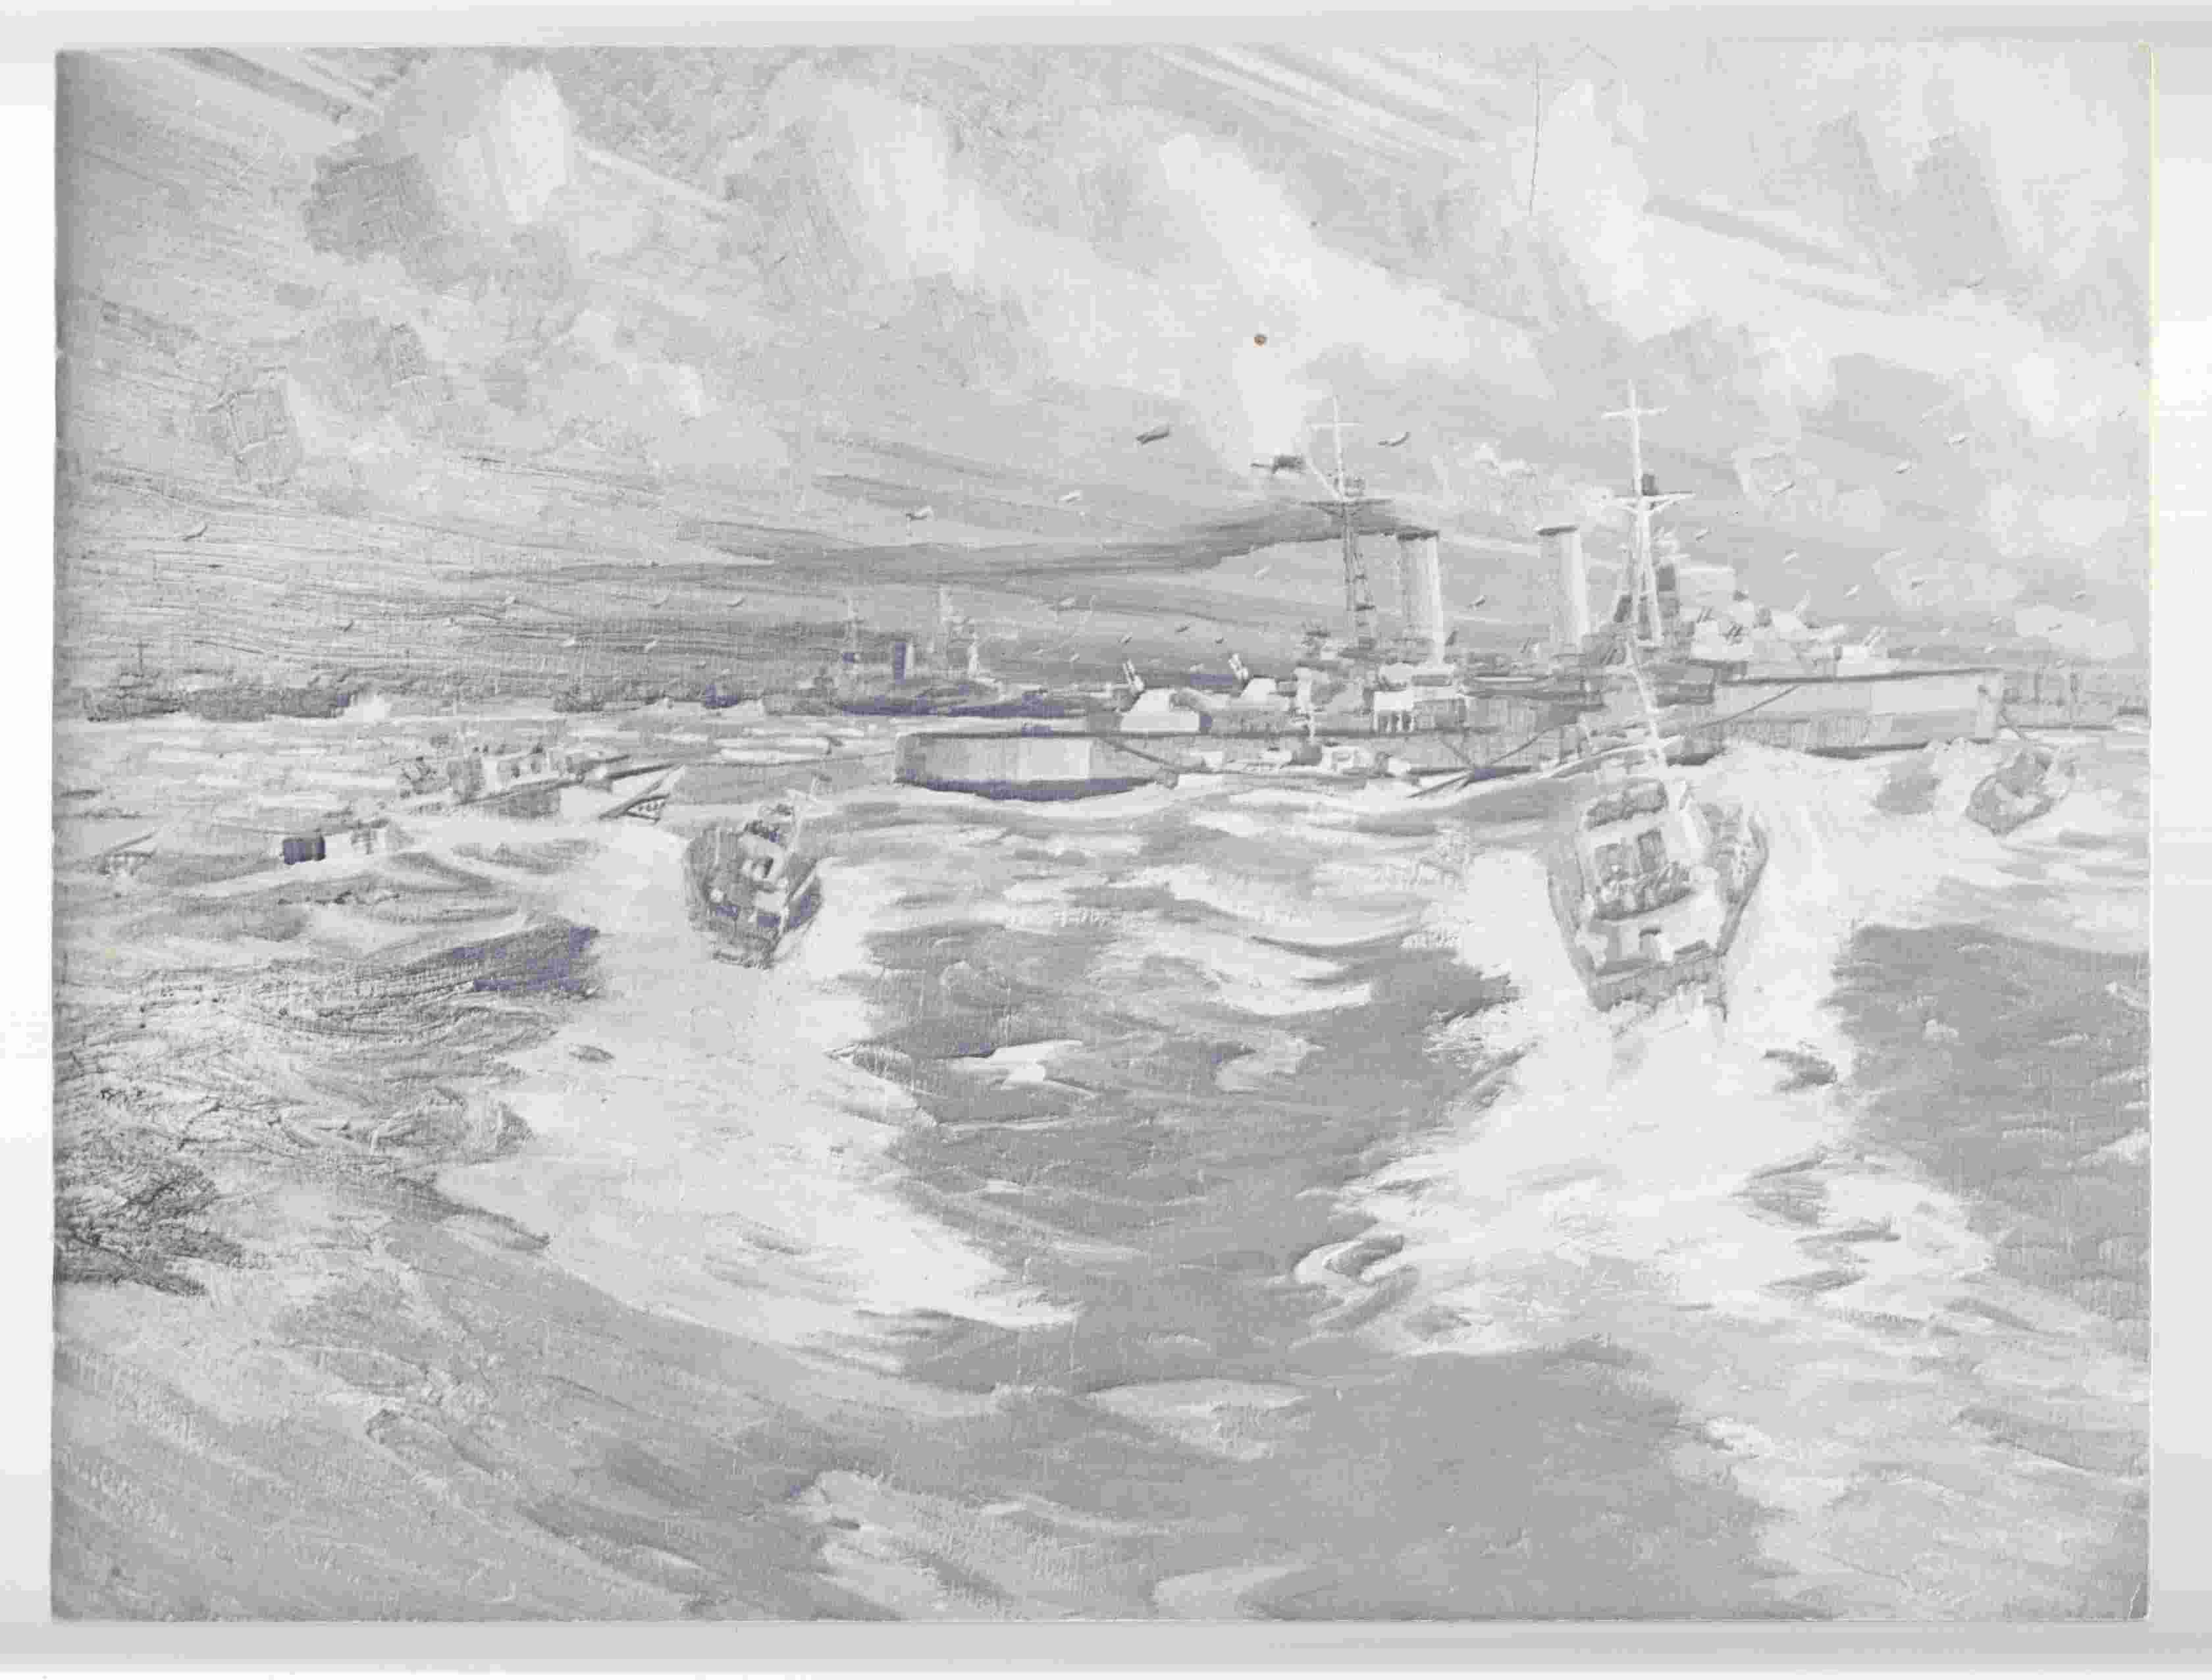 Image for Naval Paintings of the Second World War: Naval Reserves in Canada / Tableaux Navals De La Seconde Guerre Mondiale: Les Reserves Navales Au Canada